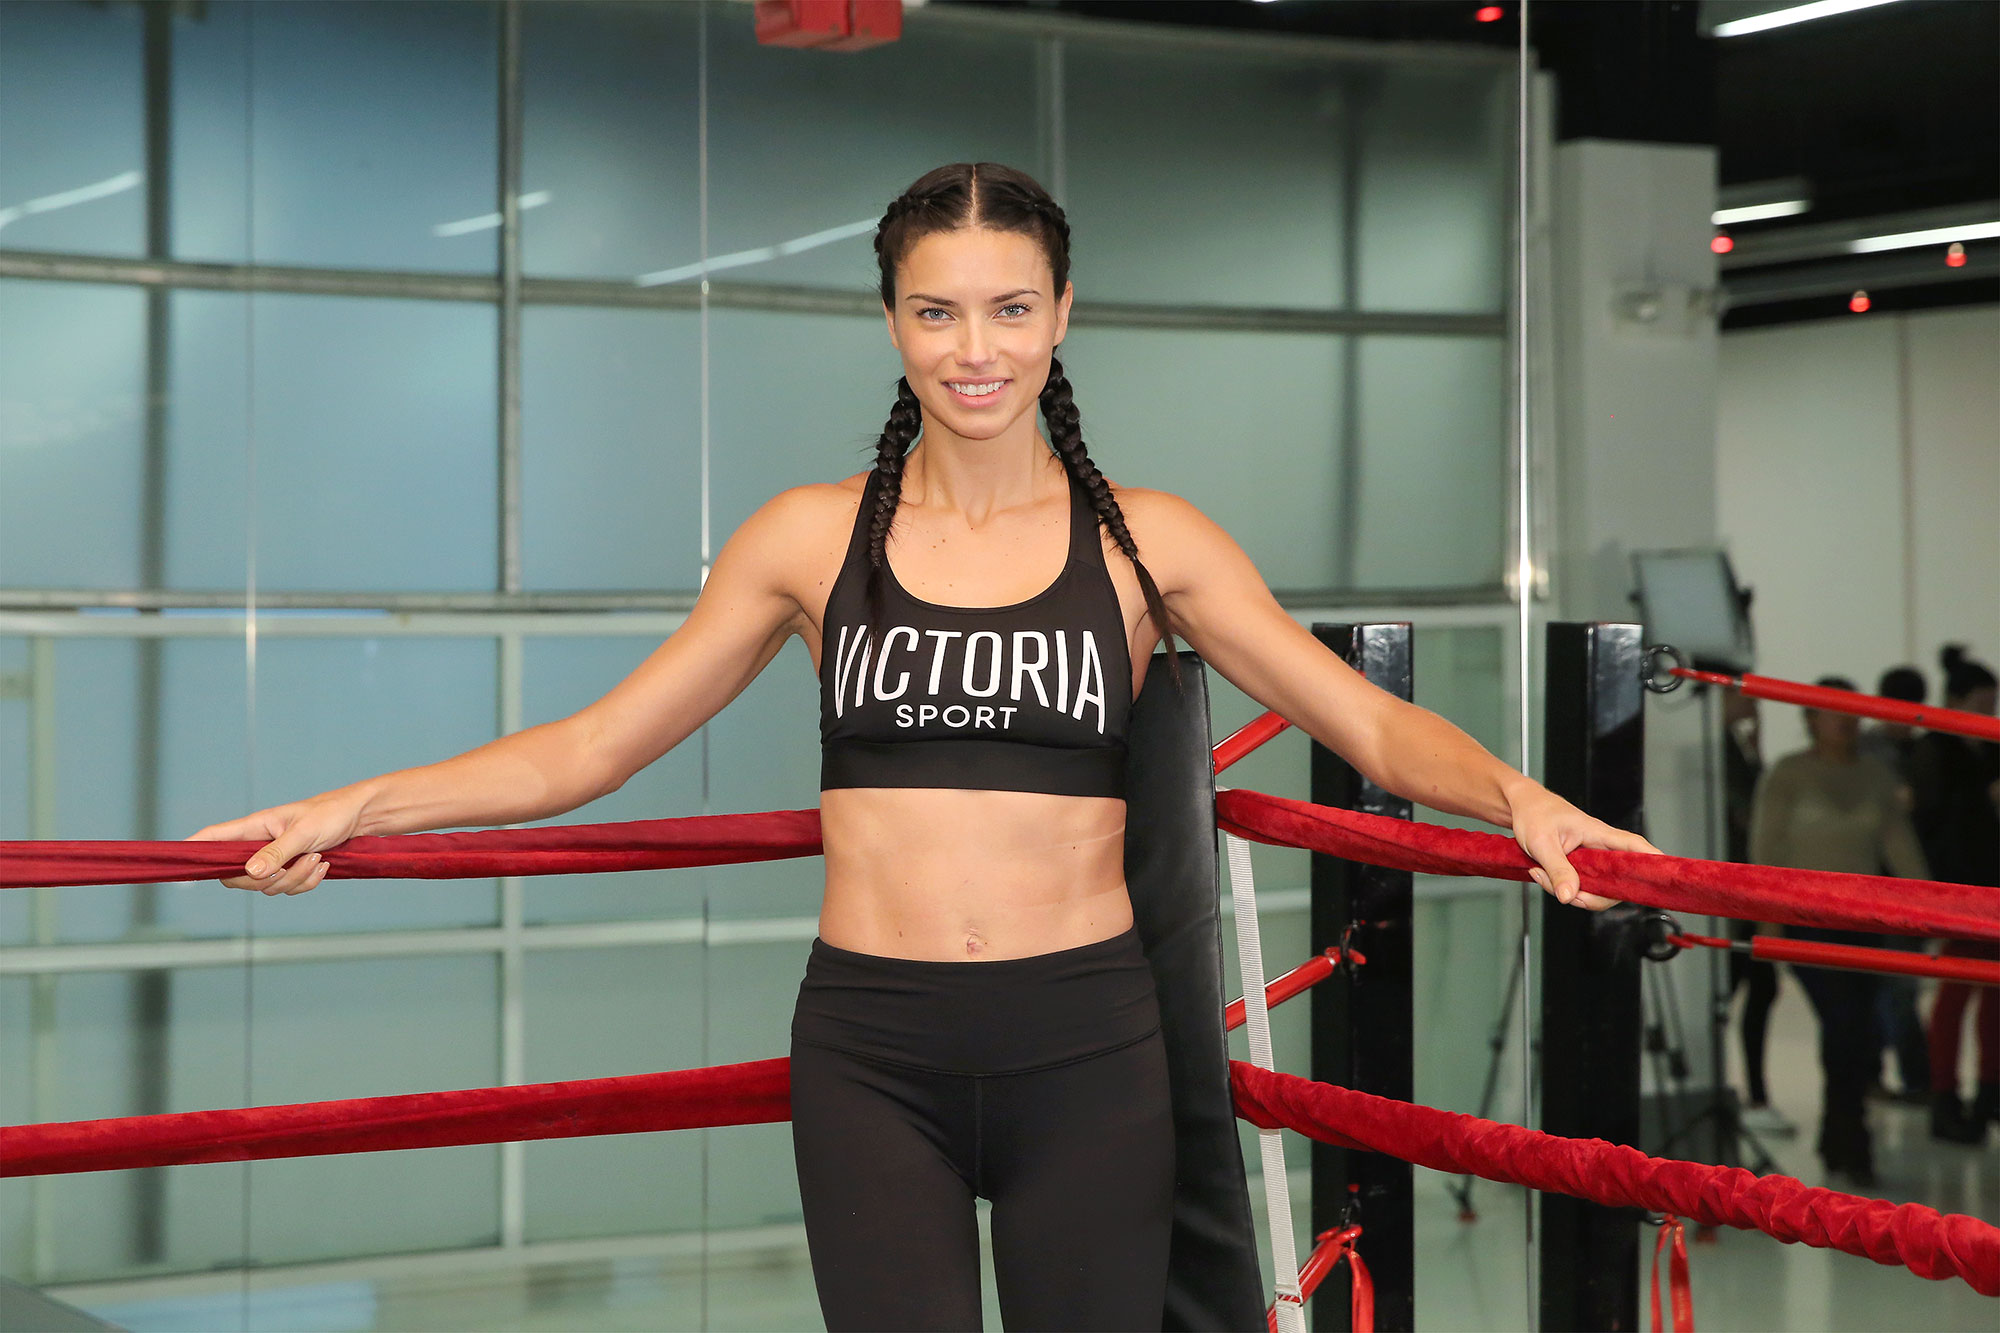 Adriana Lima Admits She Feels More Confident When She Wears Makeup to the Gym - Adriana Lima trains for the 2016 Victoria's Secret Fashion Show at Aerospace High Performance Center on November 21, 2016 in New York City.